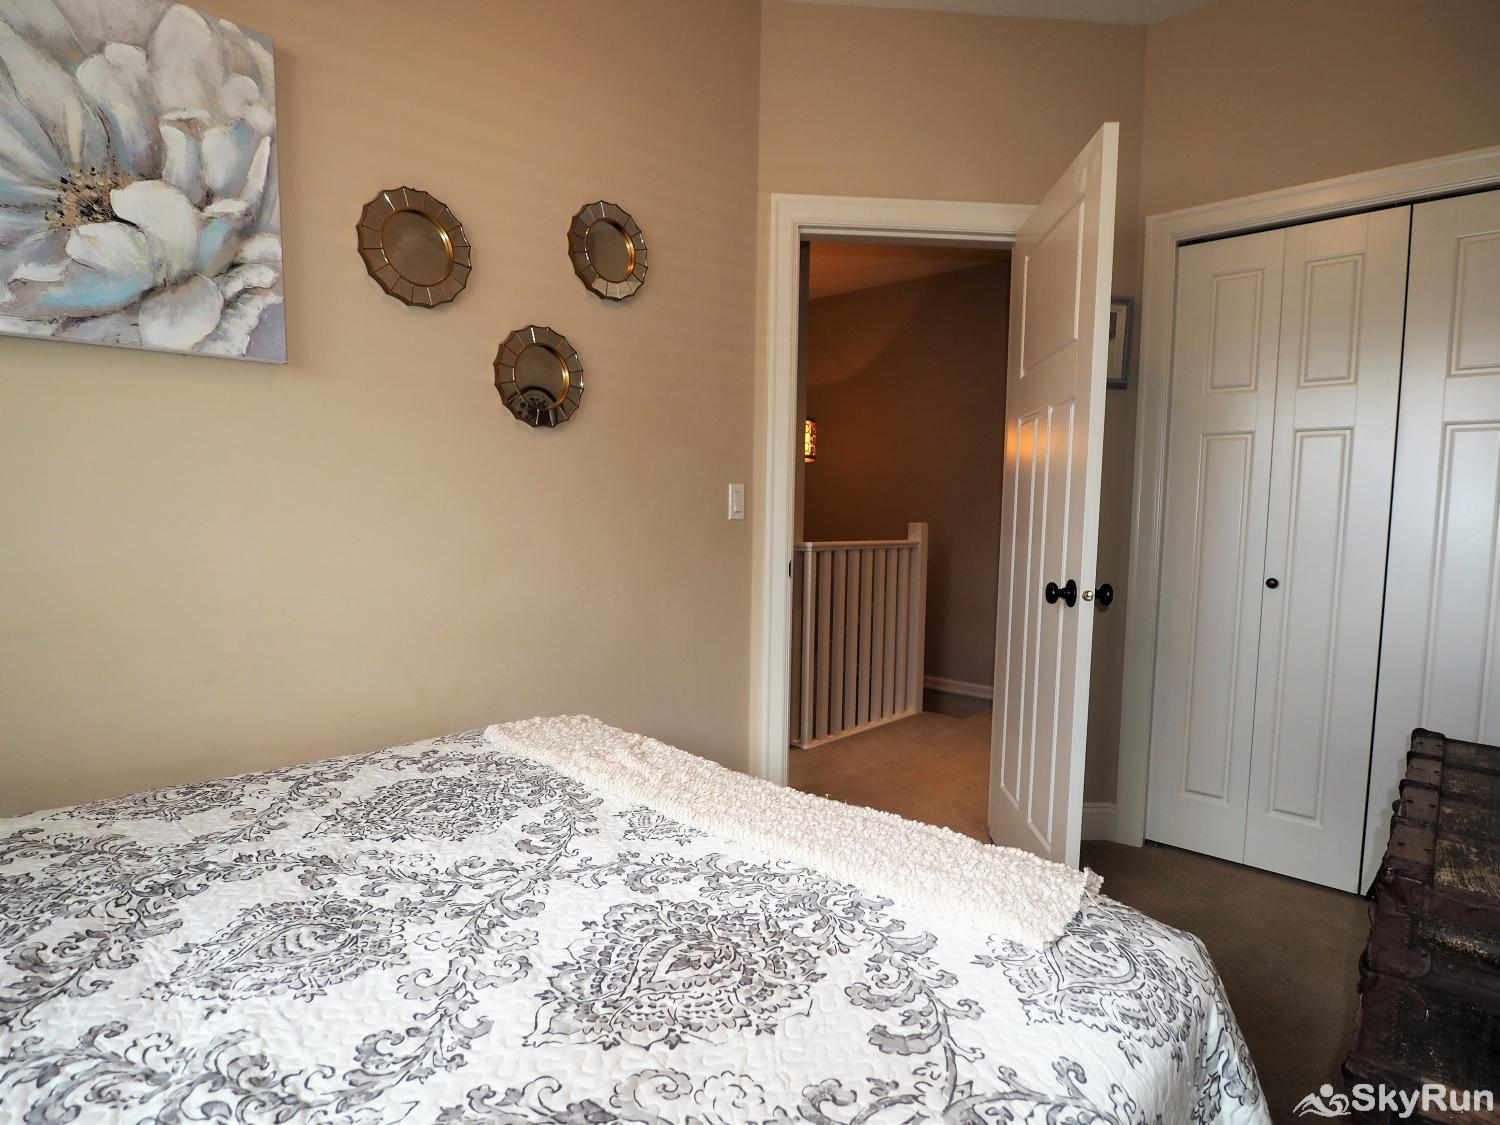 Old Summerland 4 bedroom townhouse Bedroom 2 is on the 2nd floor and has a queen bed